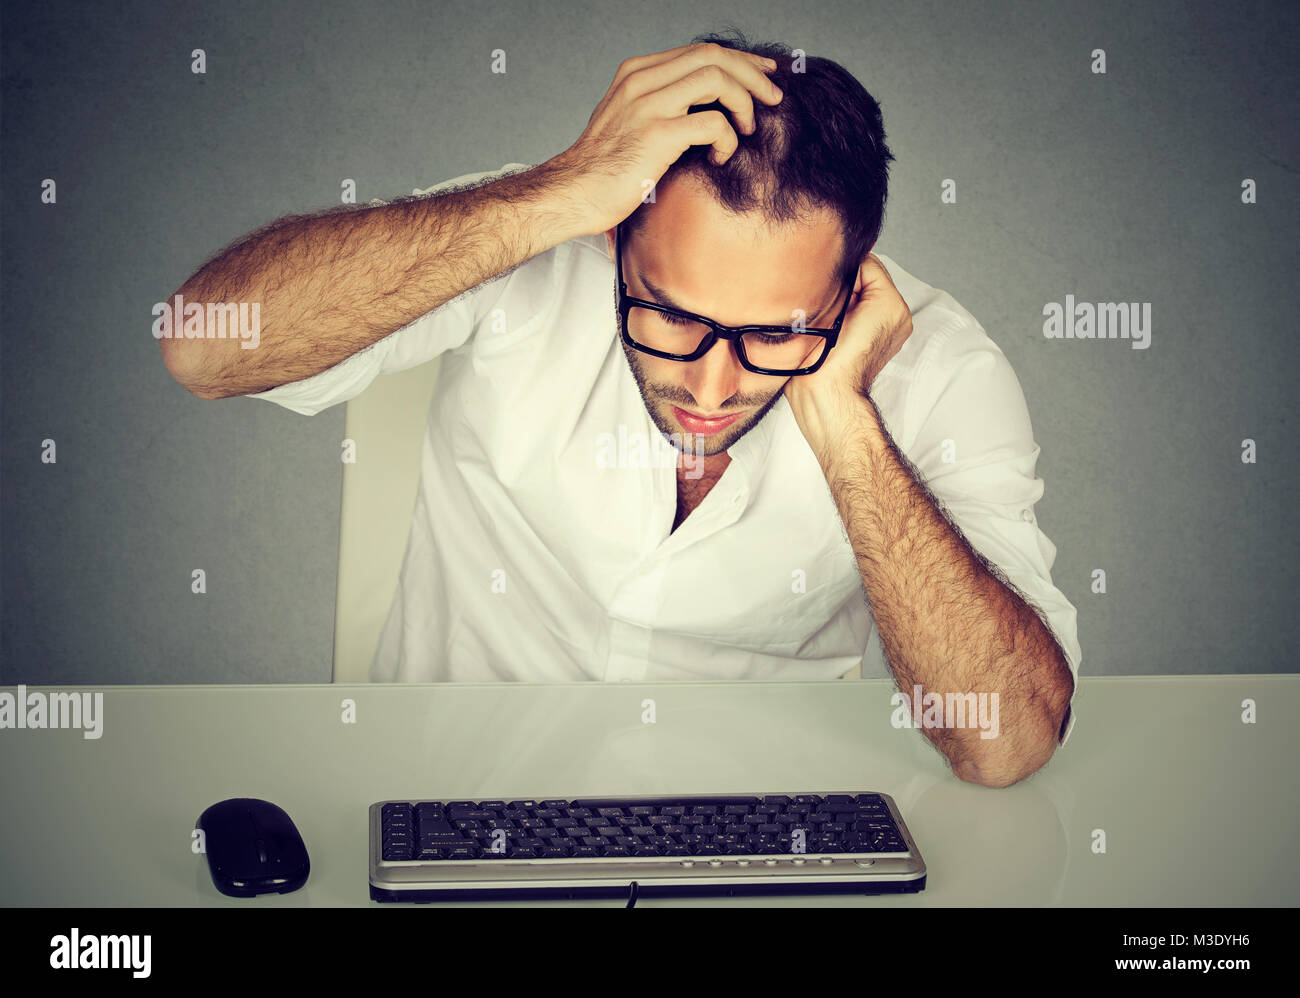 Formal man in eyeglasses scratching head trying to remember password looking at keyboard. - Stock Image